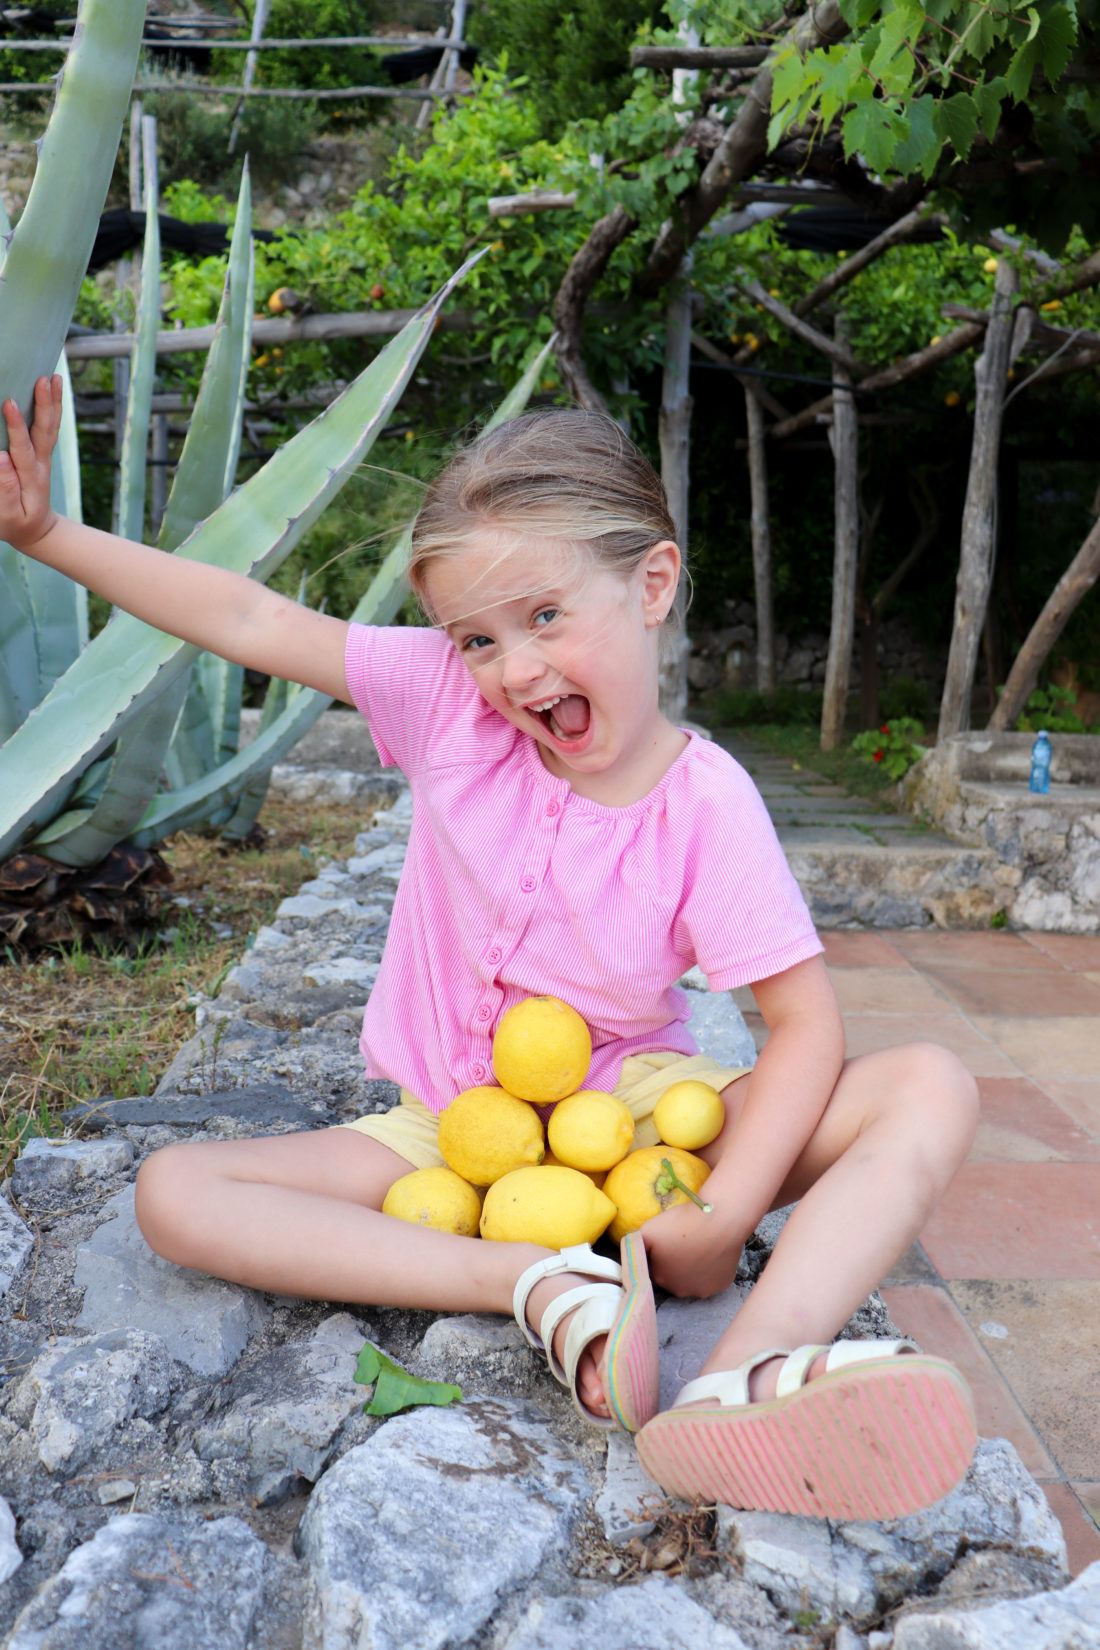 Eva Amurri Martino's daughter Marlowe collects lemons in Amalfi